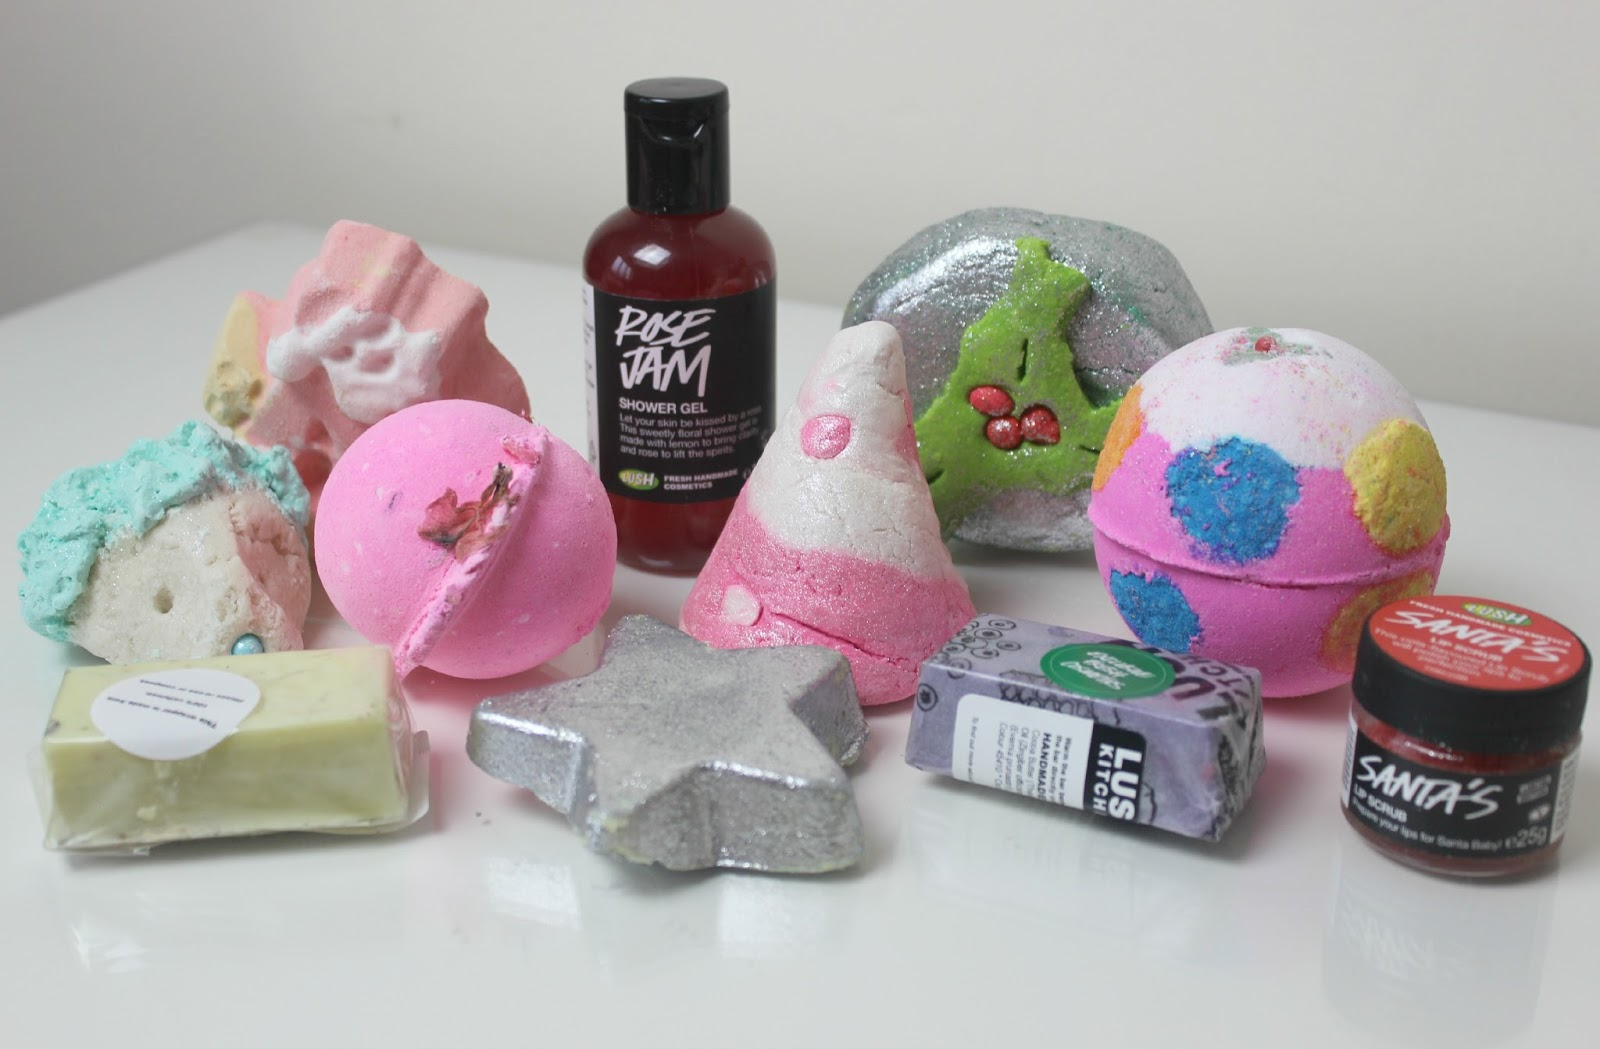 A picture of the Lush Christmas Collection